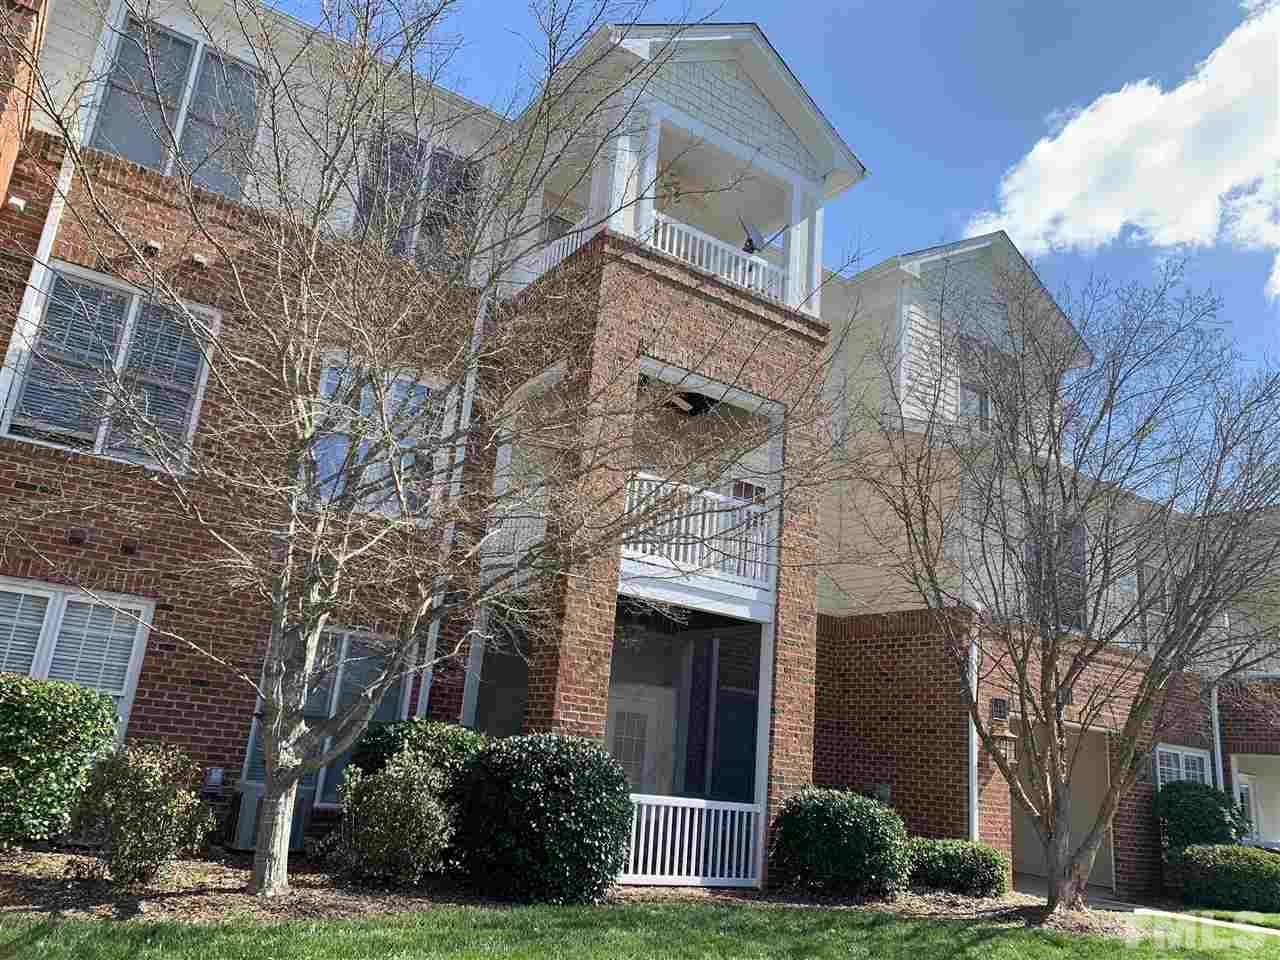 Photo of 635 Waterford Lake Drive #635, Cary, NC 27519 (MLS # 2369013)